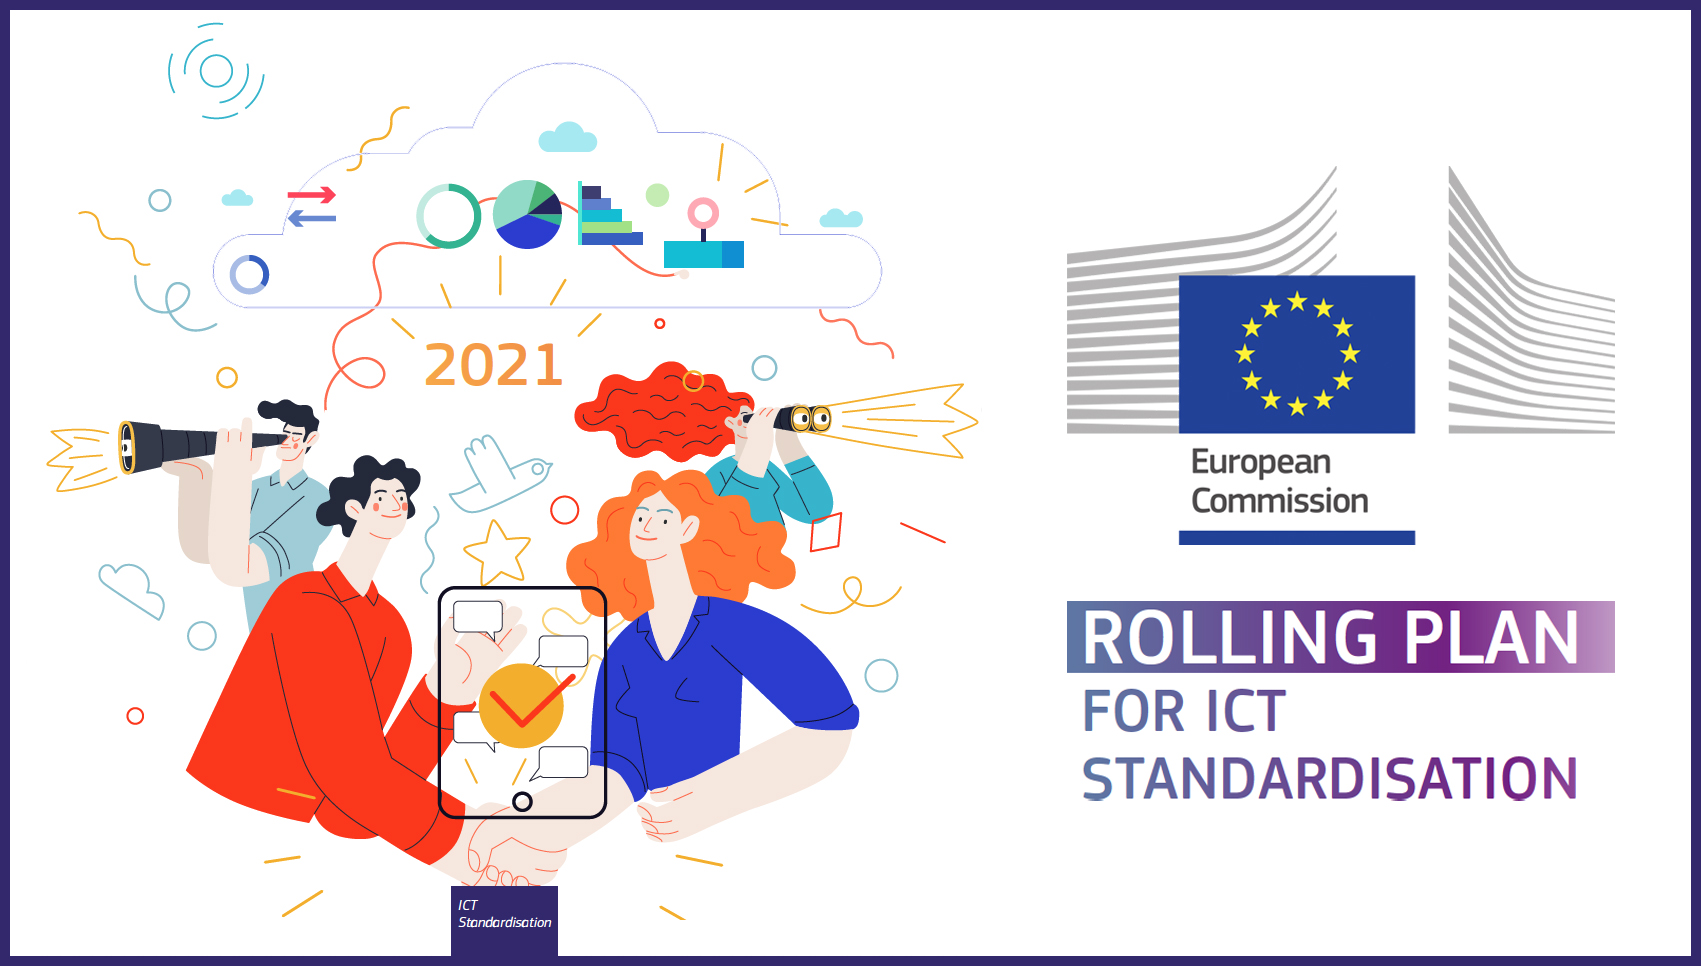 2021 - EU 2021 Rolling plan for ICT standardisation